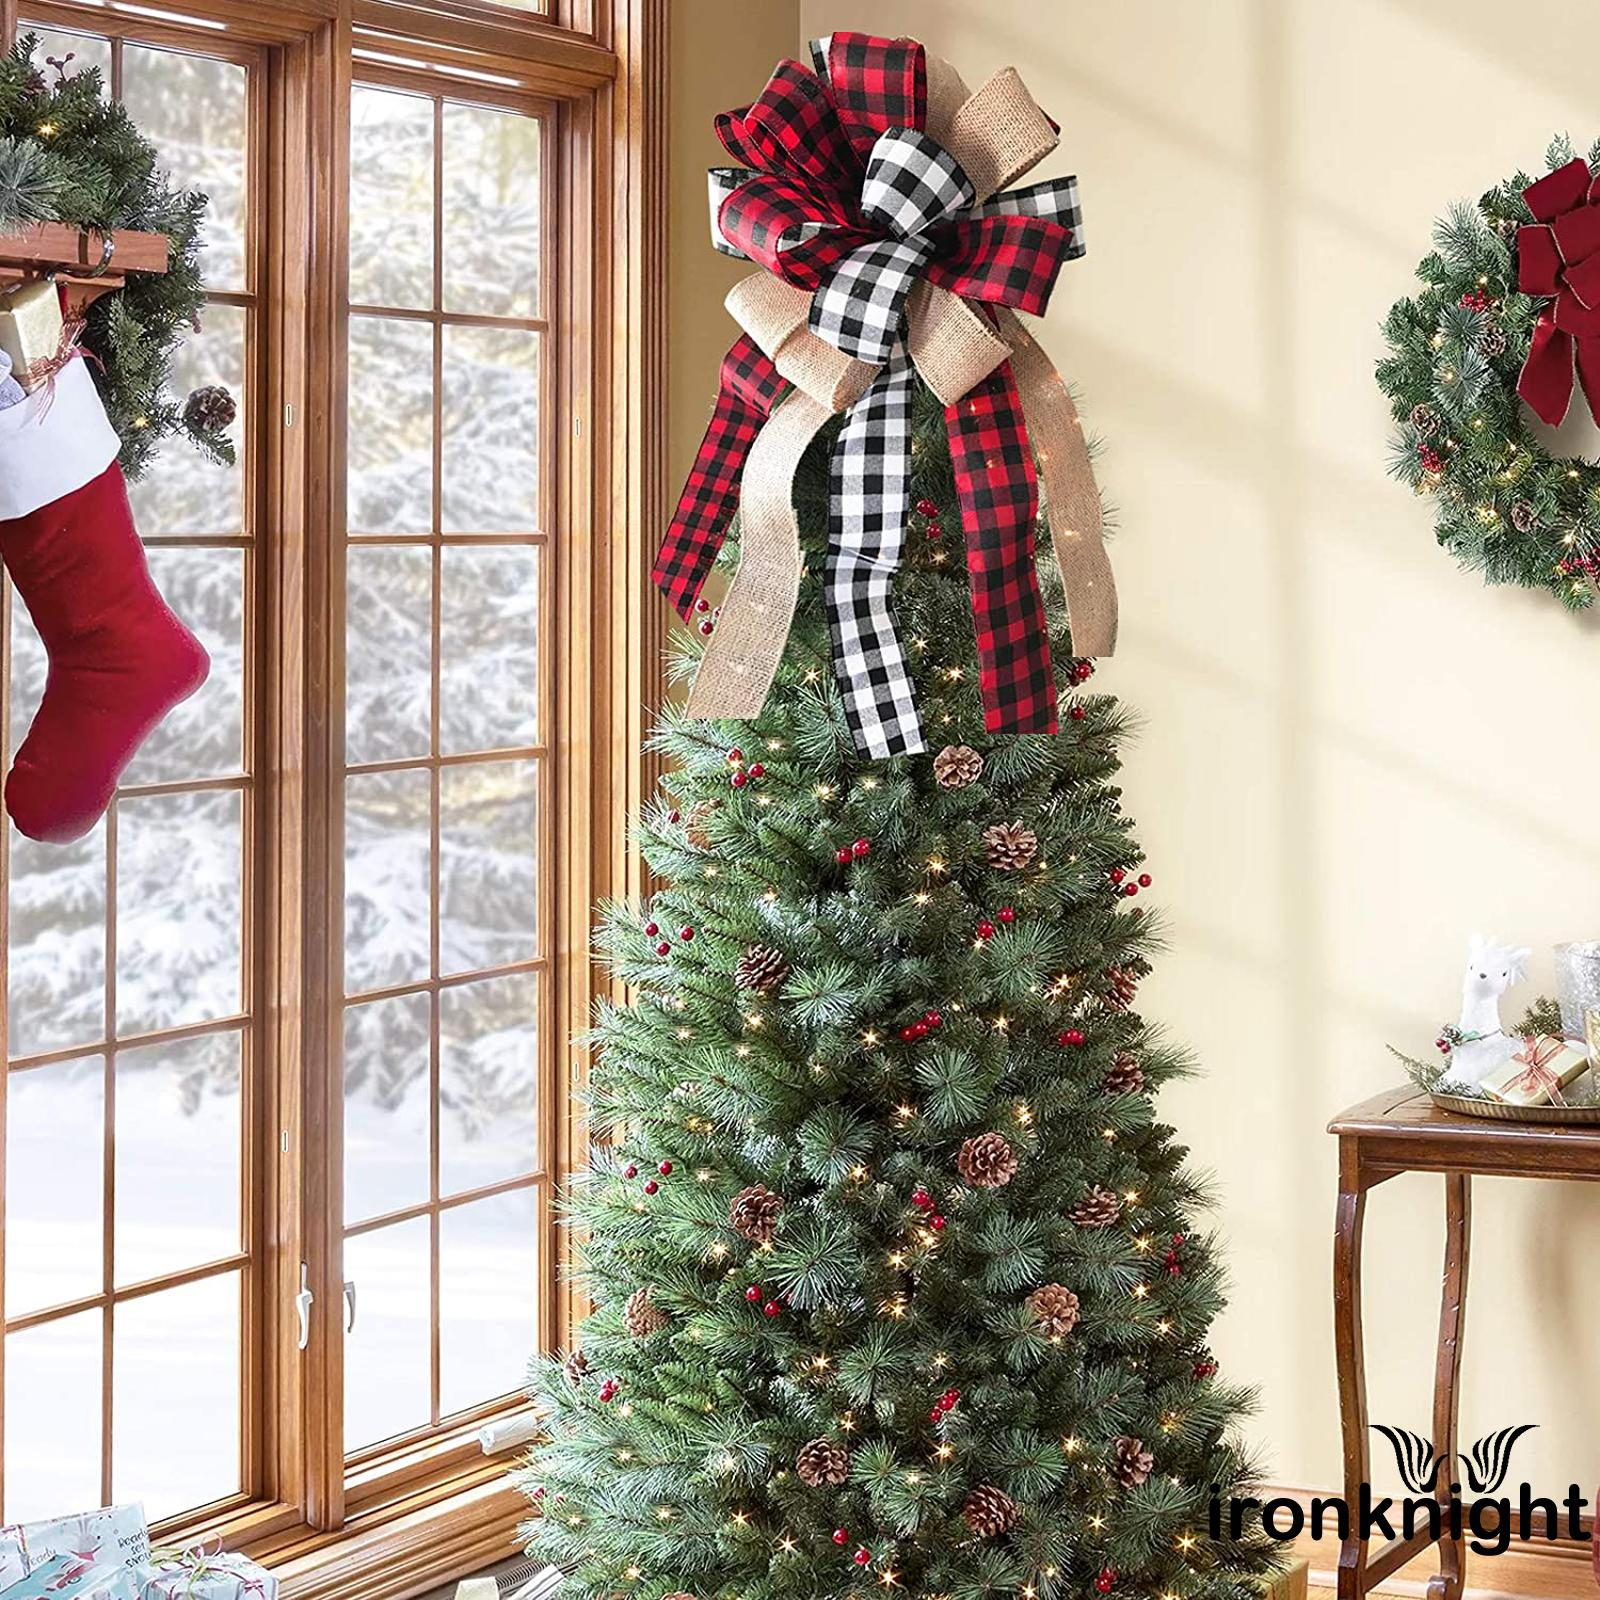 Ltl Christmas Tree Topper Rustic Buffalo Plaid Decorative Bow For Holiday Home Party Decor Shopee Singapore